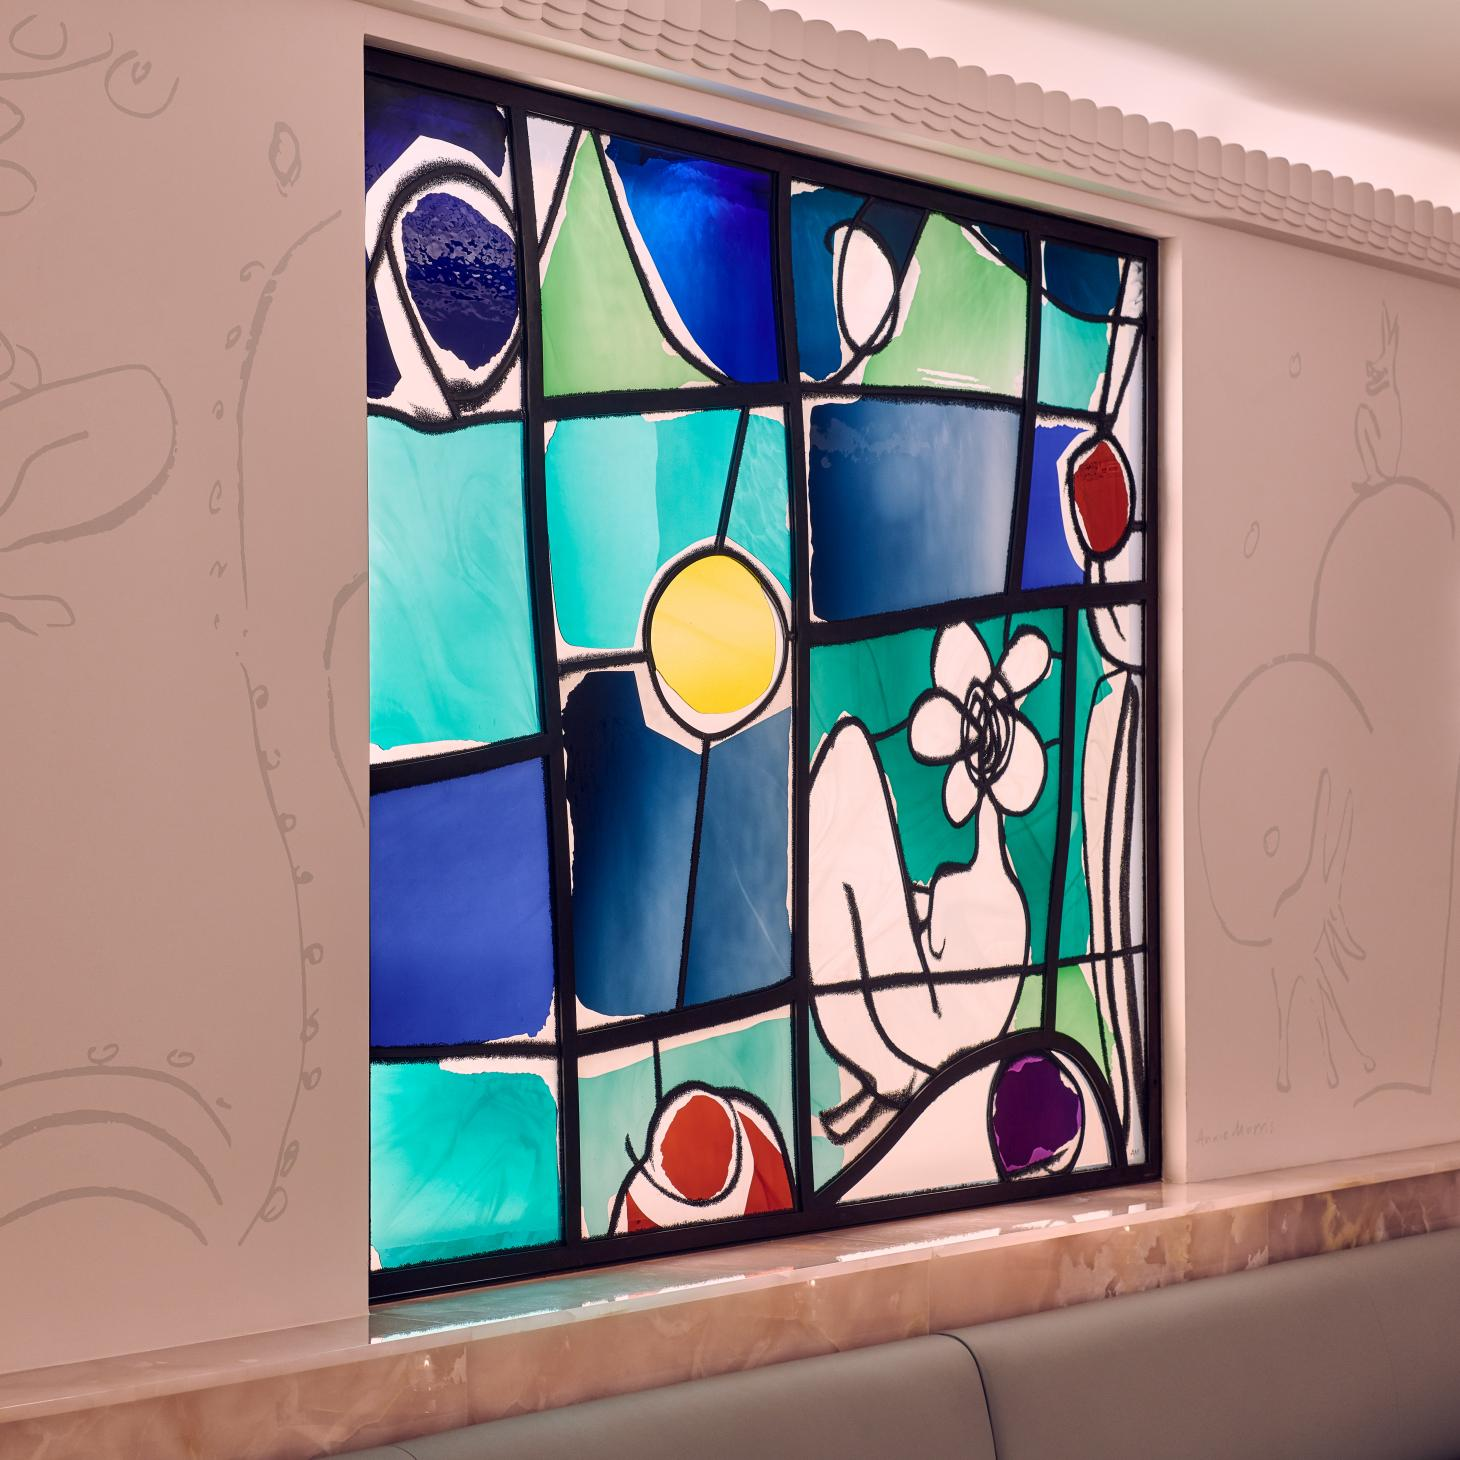 Stained glass windows at Claridge's Painter's Room bar